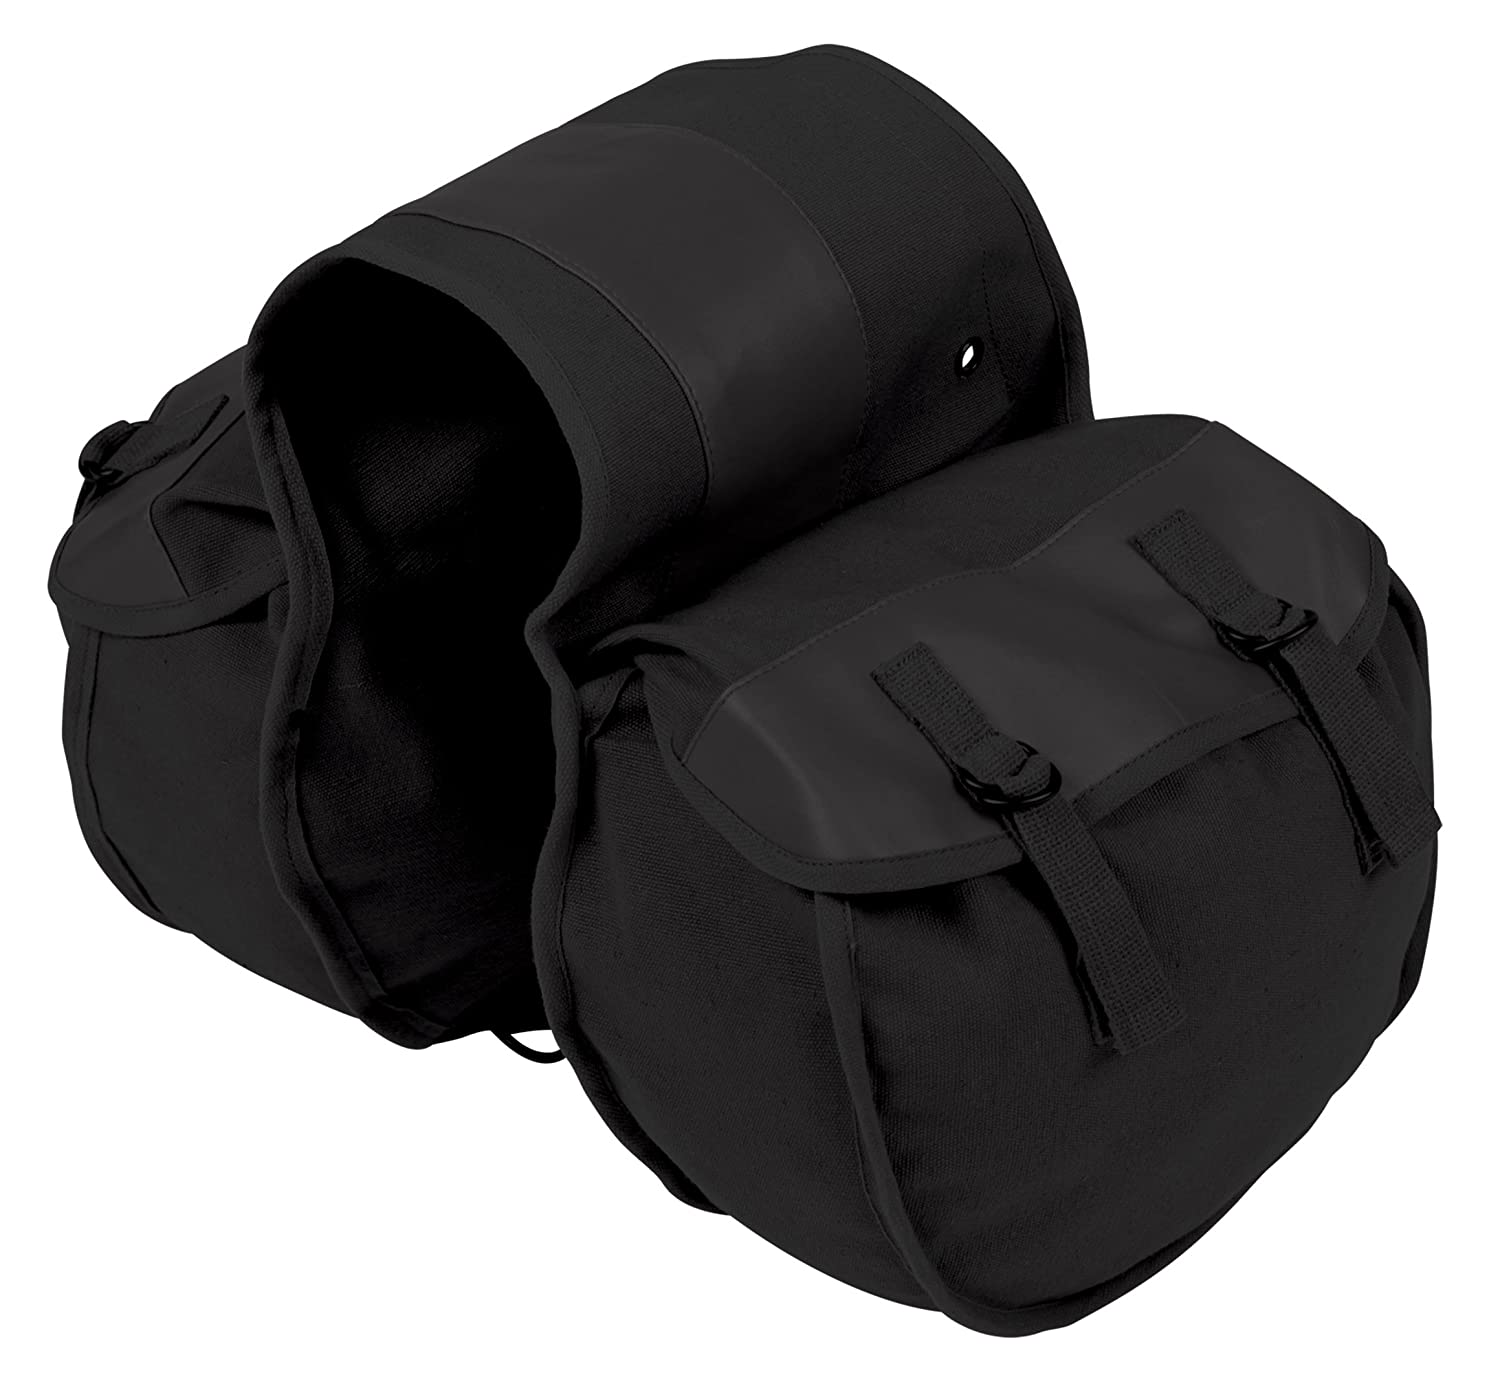 Stansport Saddle Bag Sports Outdoors Introduction To 7400 Series Digital Logic Devices Fizix